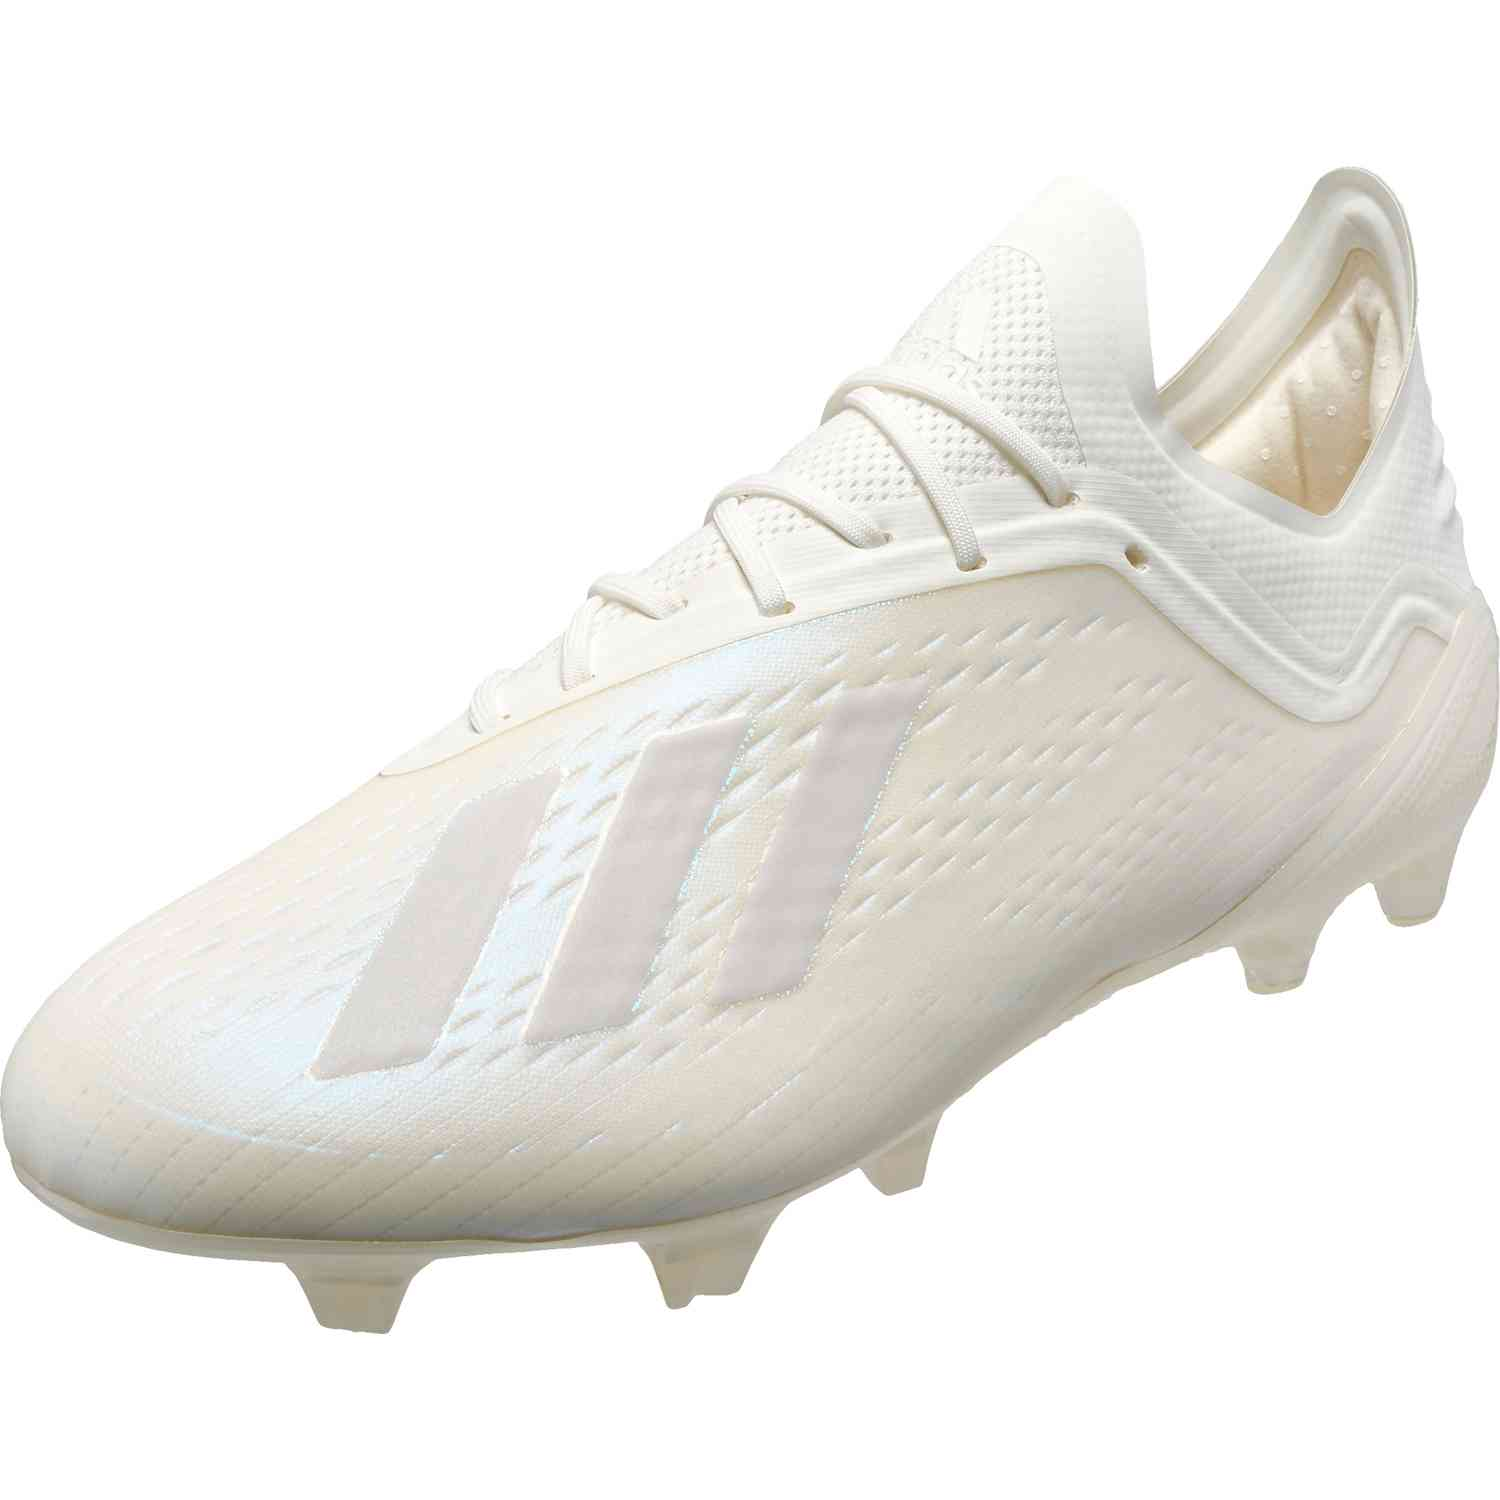 low priced 514e8 f2db6 adidas X 18.1 - Spectral Mode Pack - SoccerPro.com